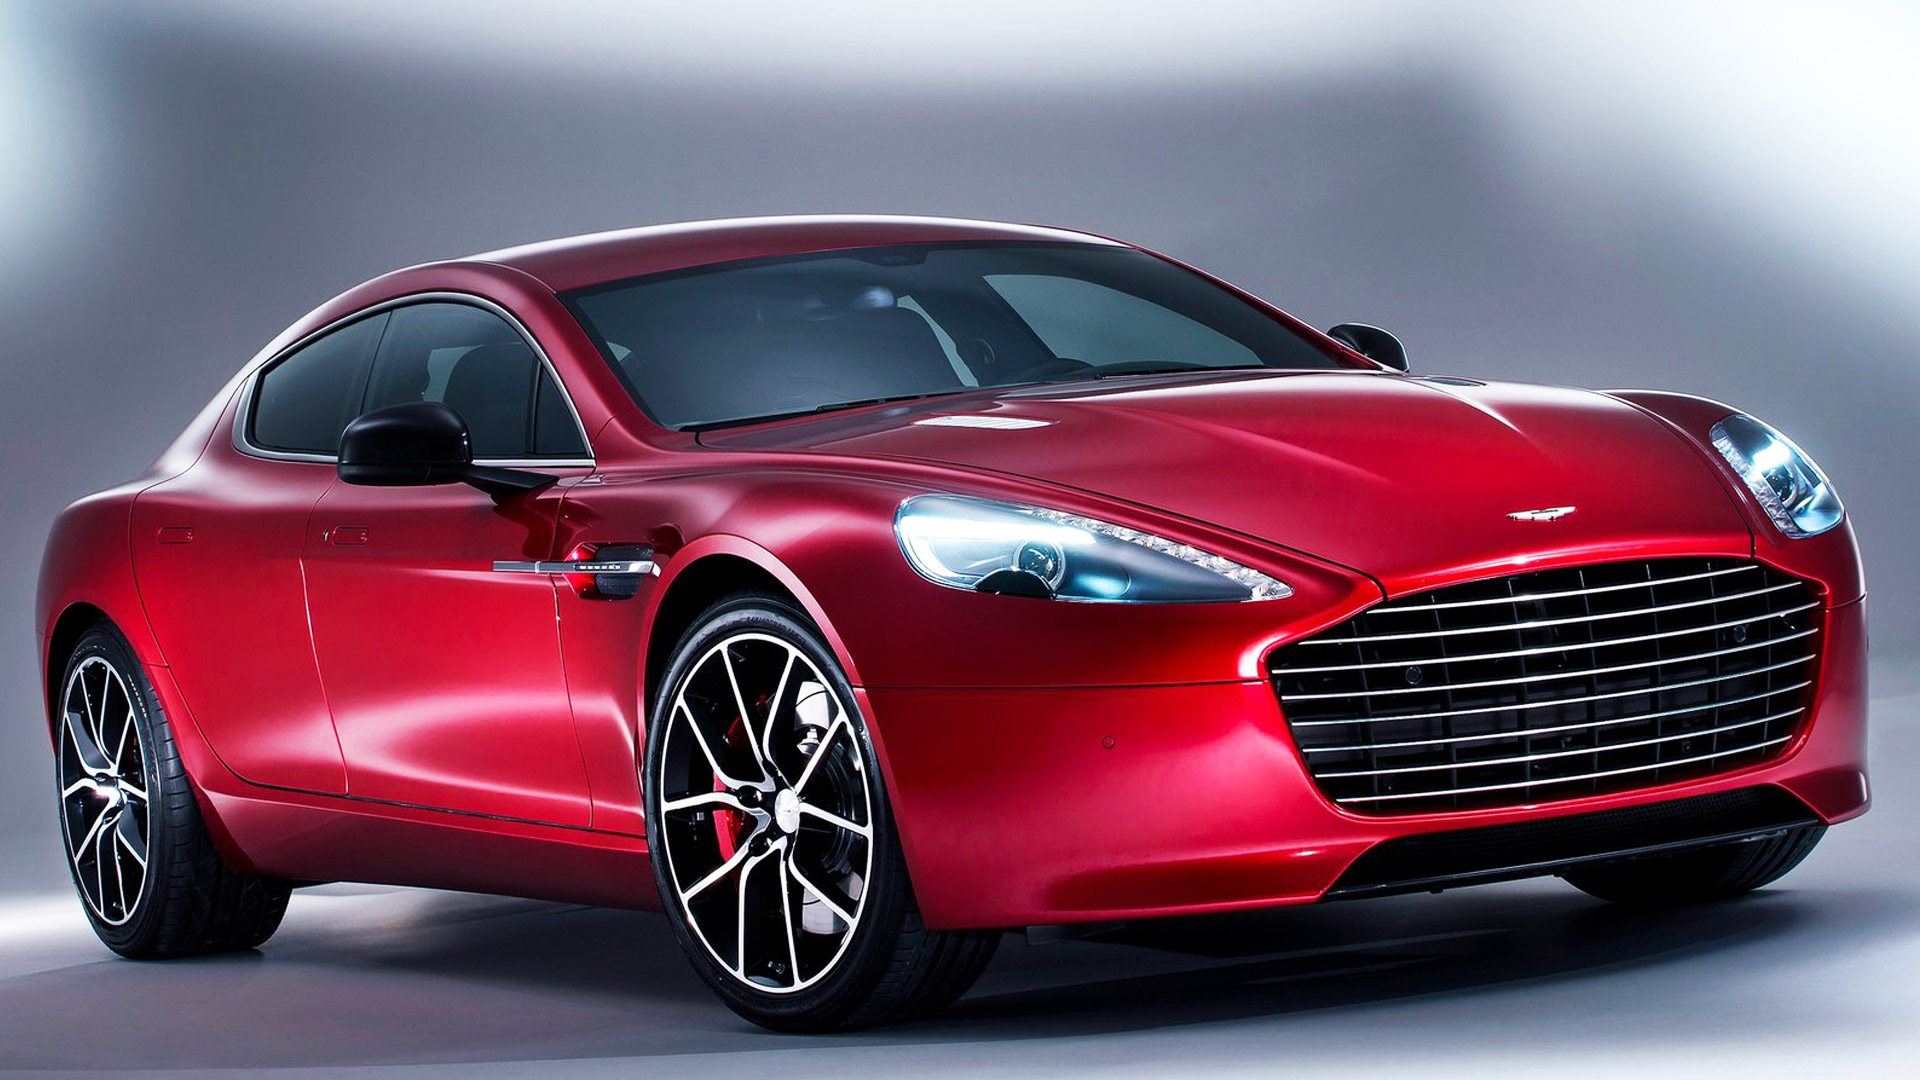 Best Luxury Cars 2014 with High Resolution Images